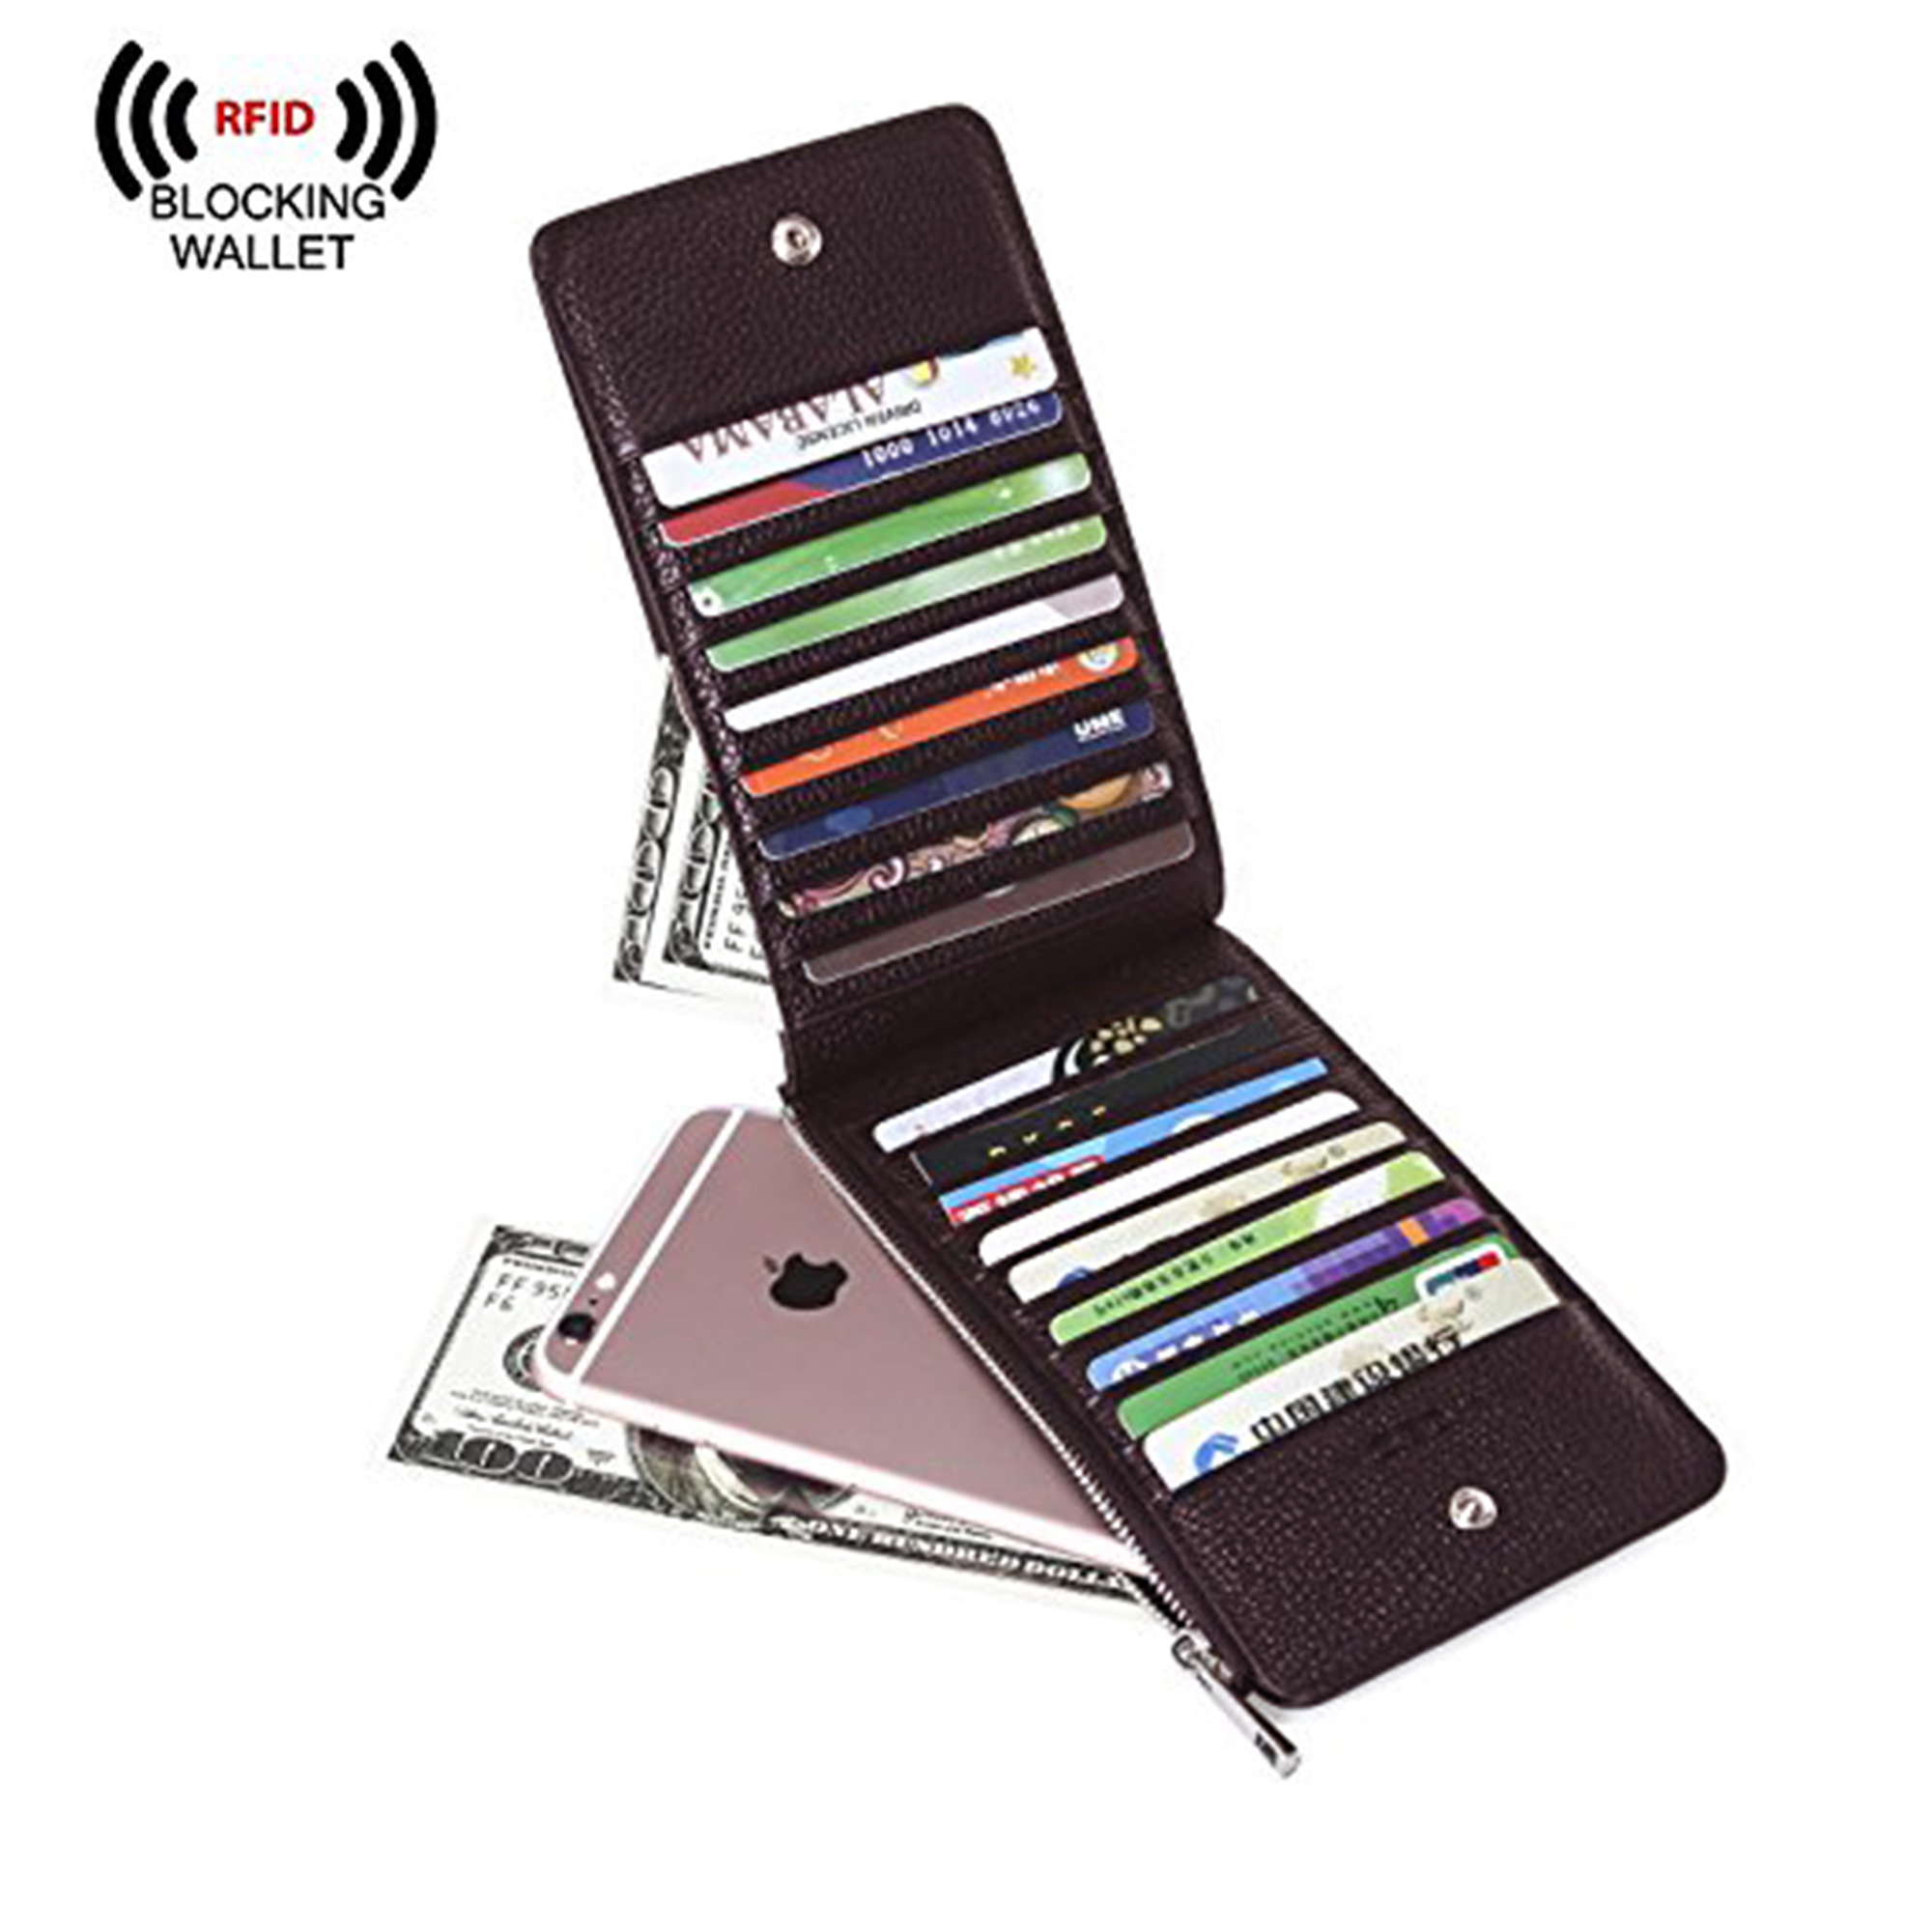 d844fdfe3f15 Details about RFID Blocking Leather Multi Card Organizer Wallet with Zipper  for Men & Women